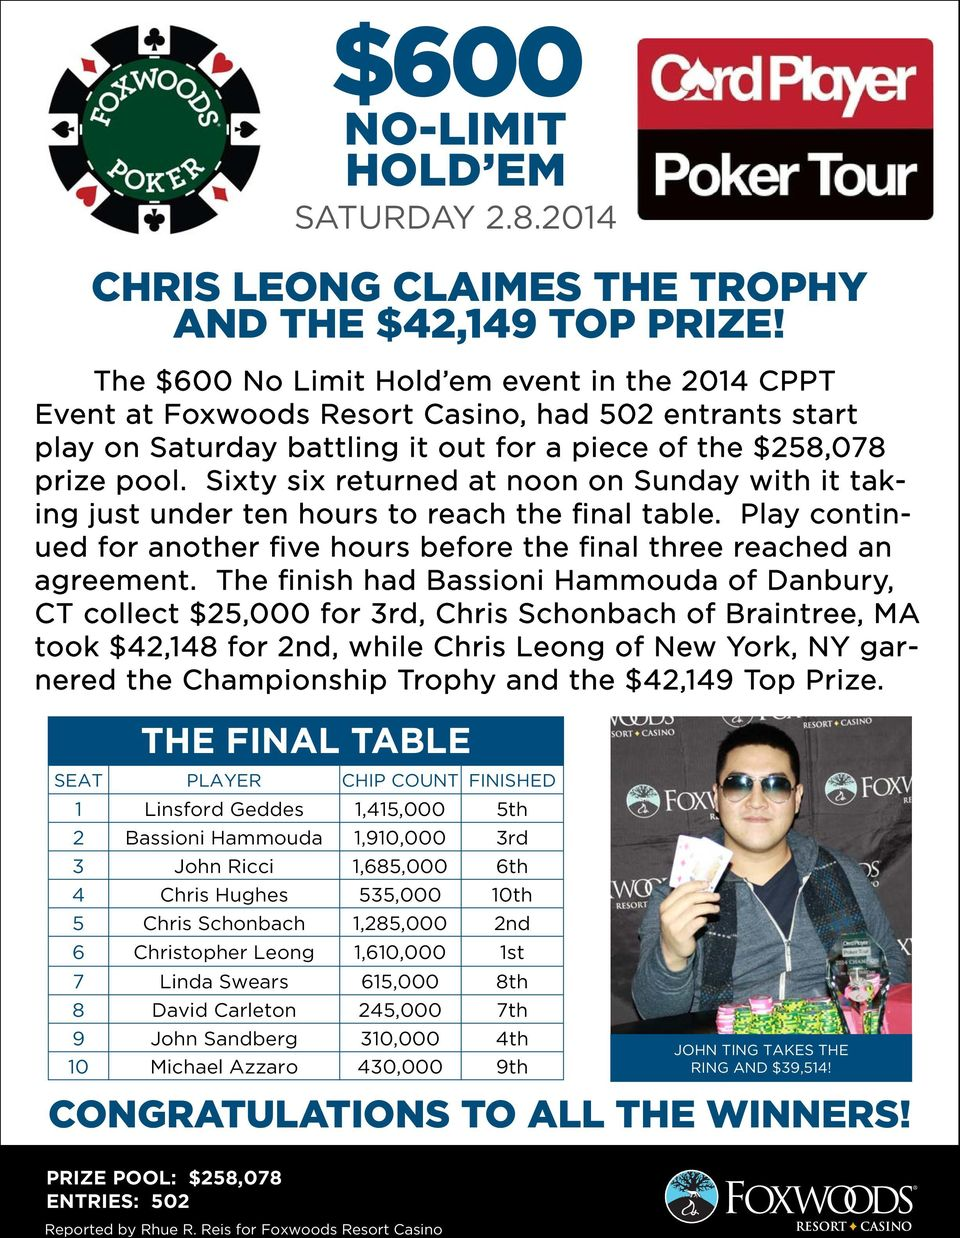 $600 NO-LIMIT HOLD EM SATURDAY CHRIS LEONG CLAIMES THE TROPHY AND